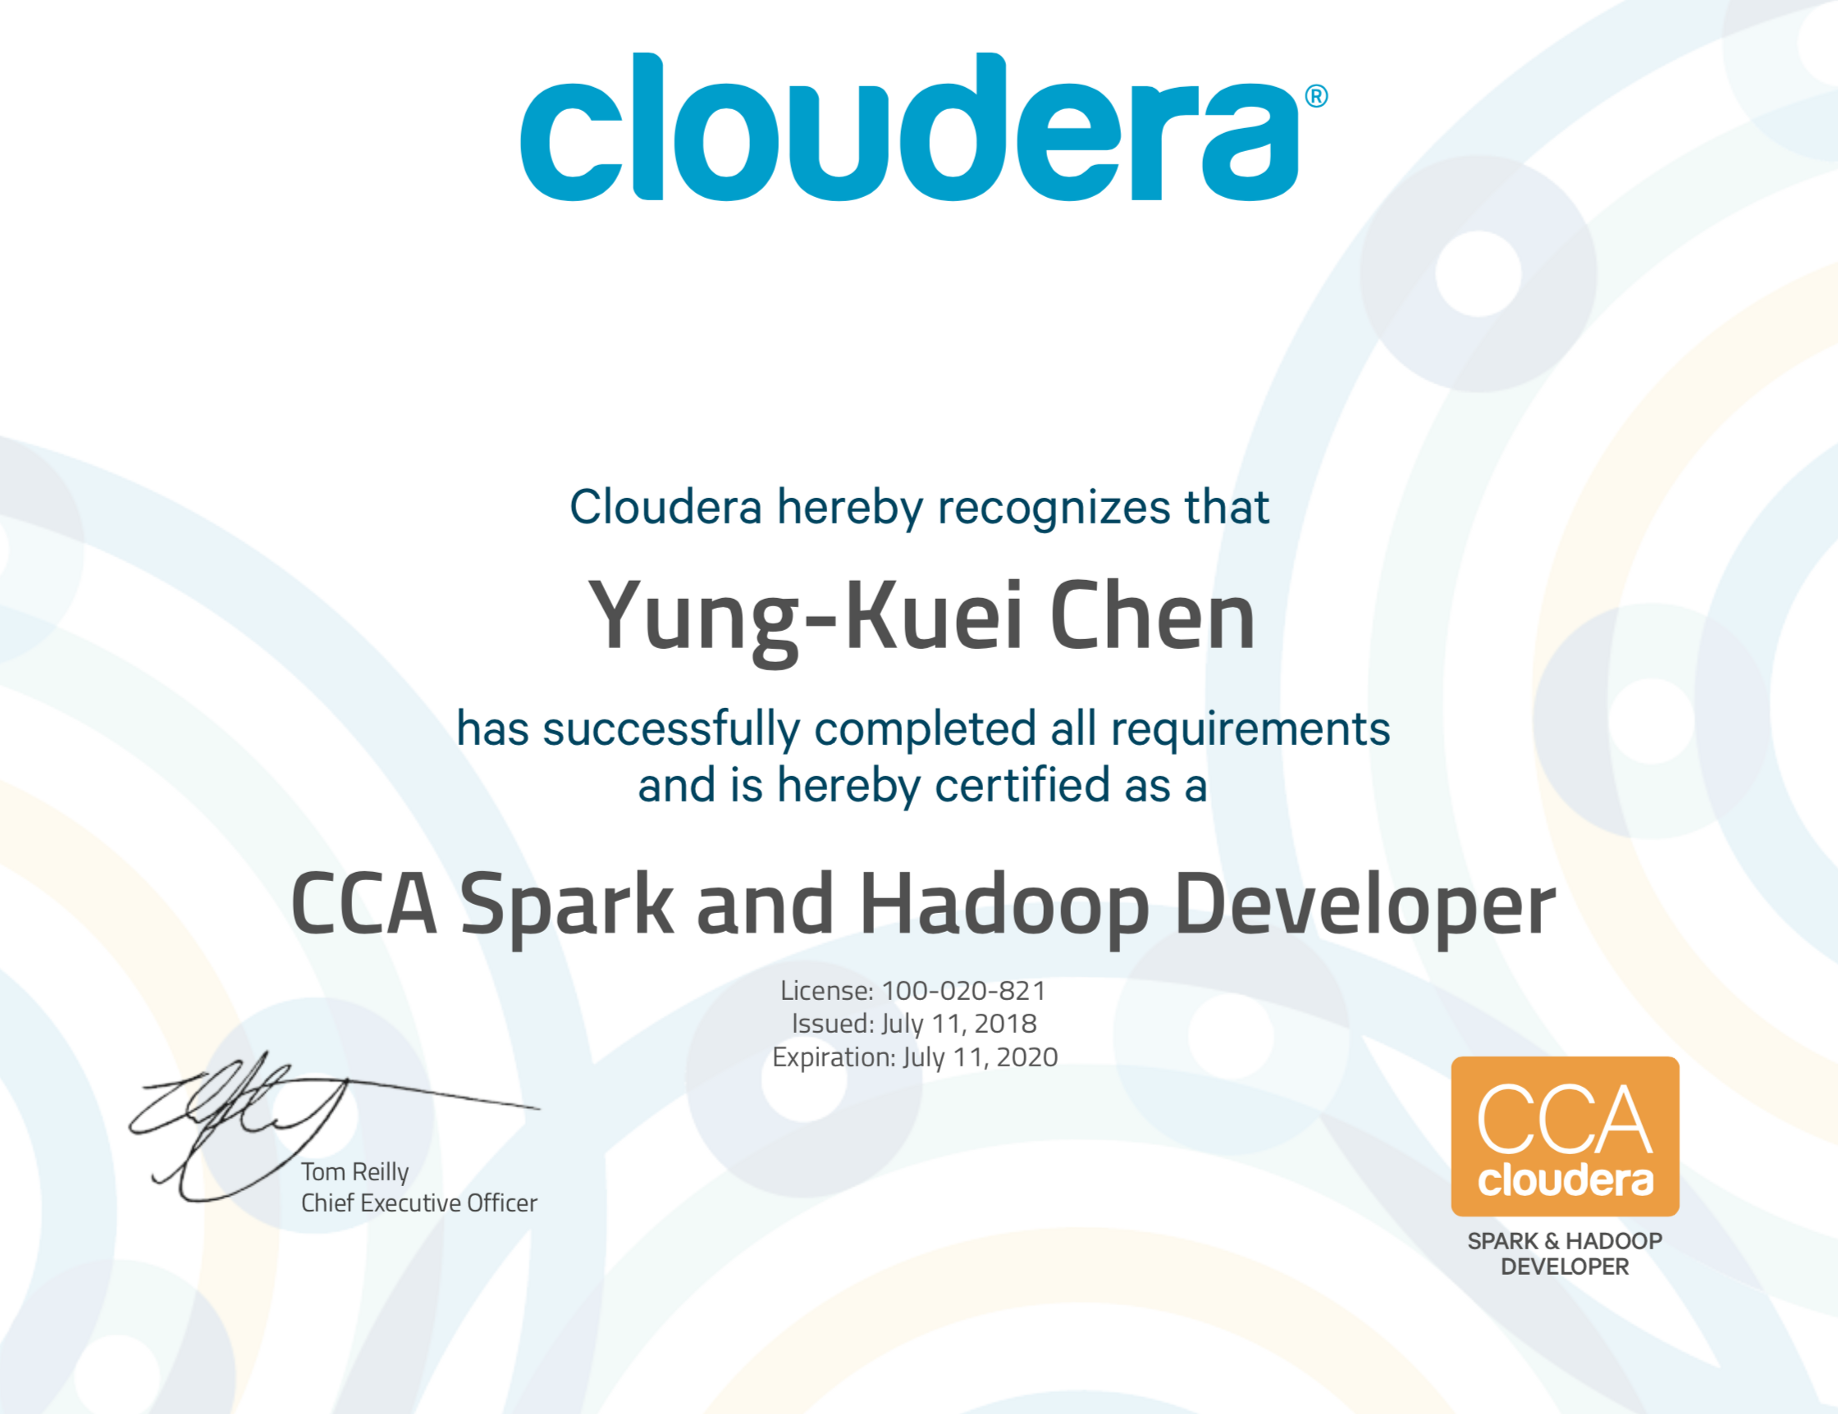 My Experience of getting Clouder CCA Spark and Hadoop Cerification